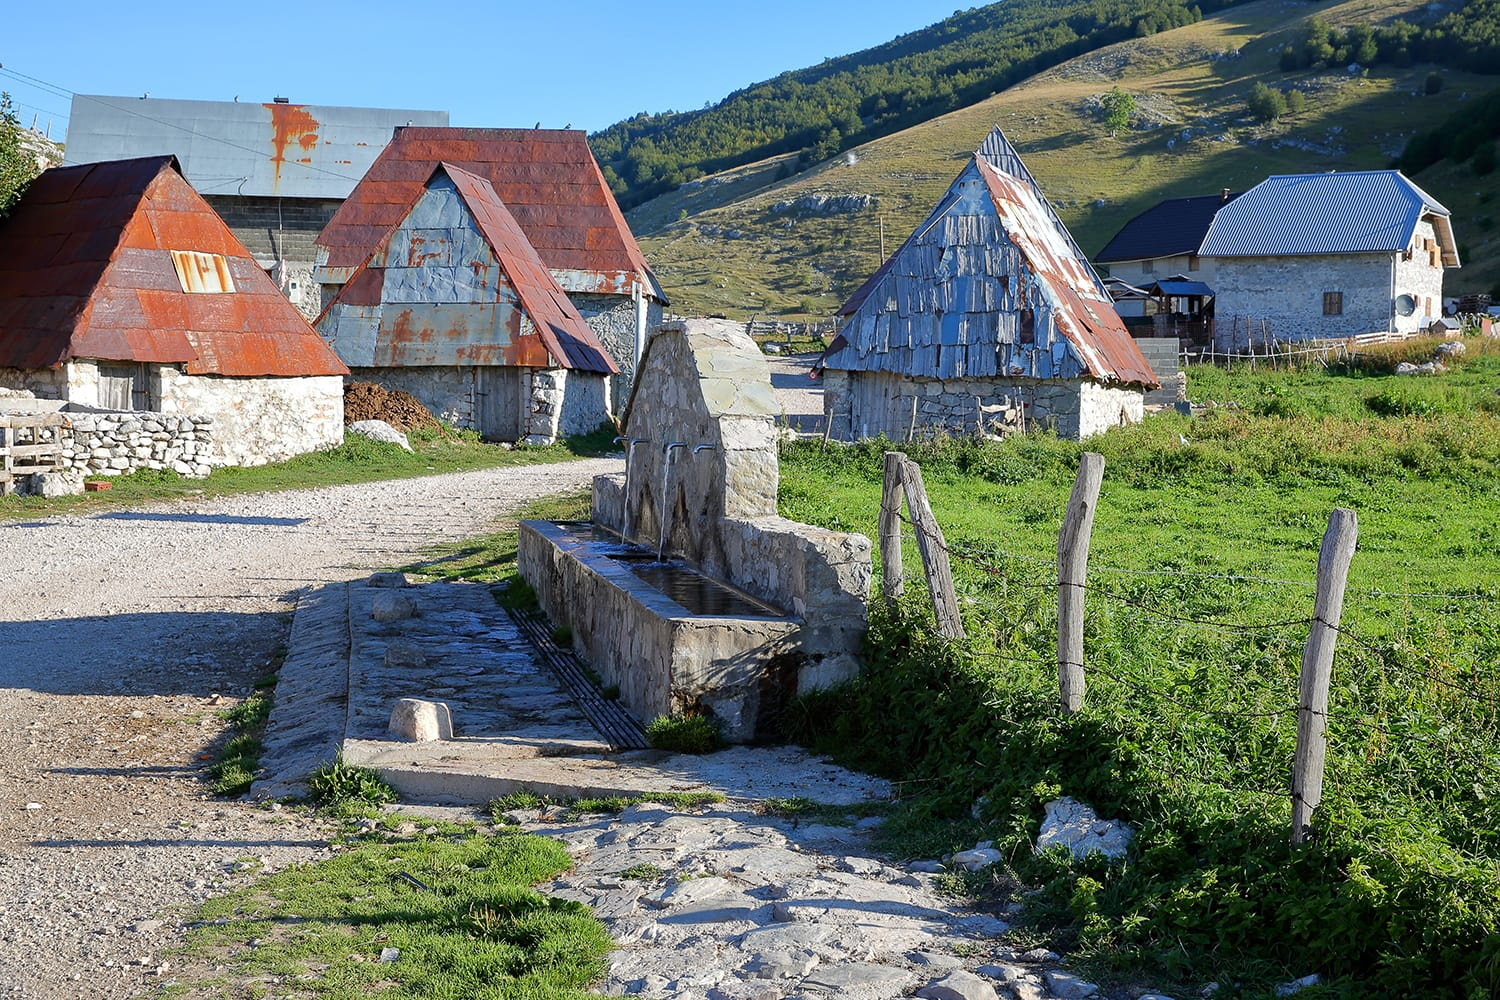 Traditional houses in Lukomir village, with a fountain in the foreground. Lukomir is Bosnia's highest village at 1469 meters and the most remote in the entire country, Bosnia and Herzegovina